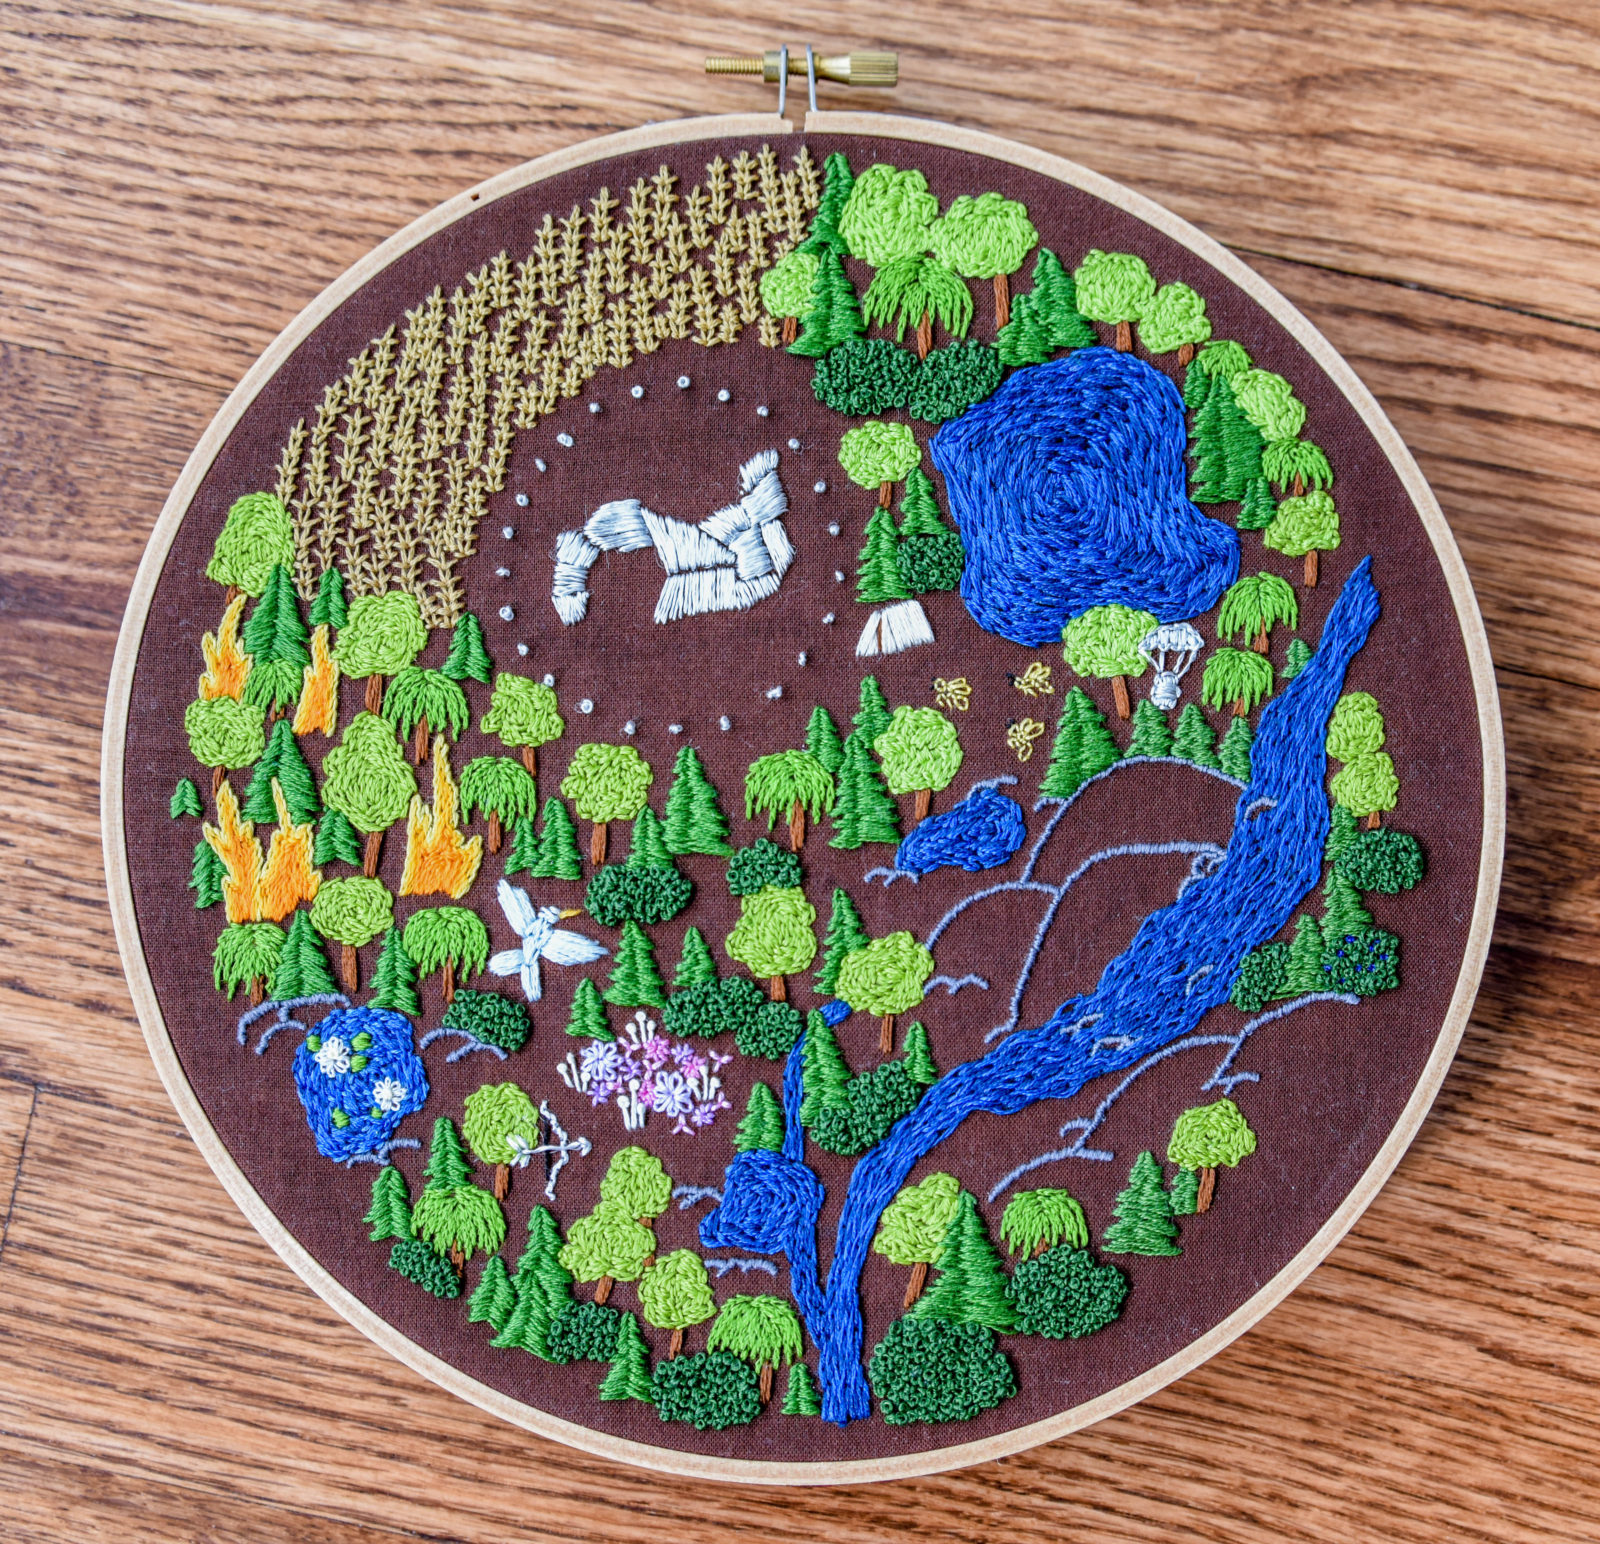 Hunger Games Embroidery